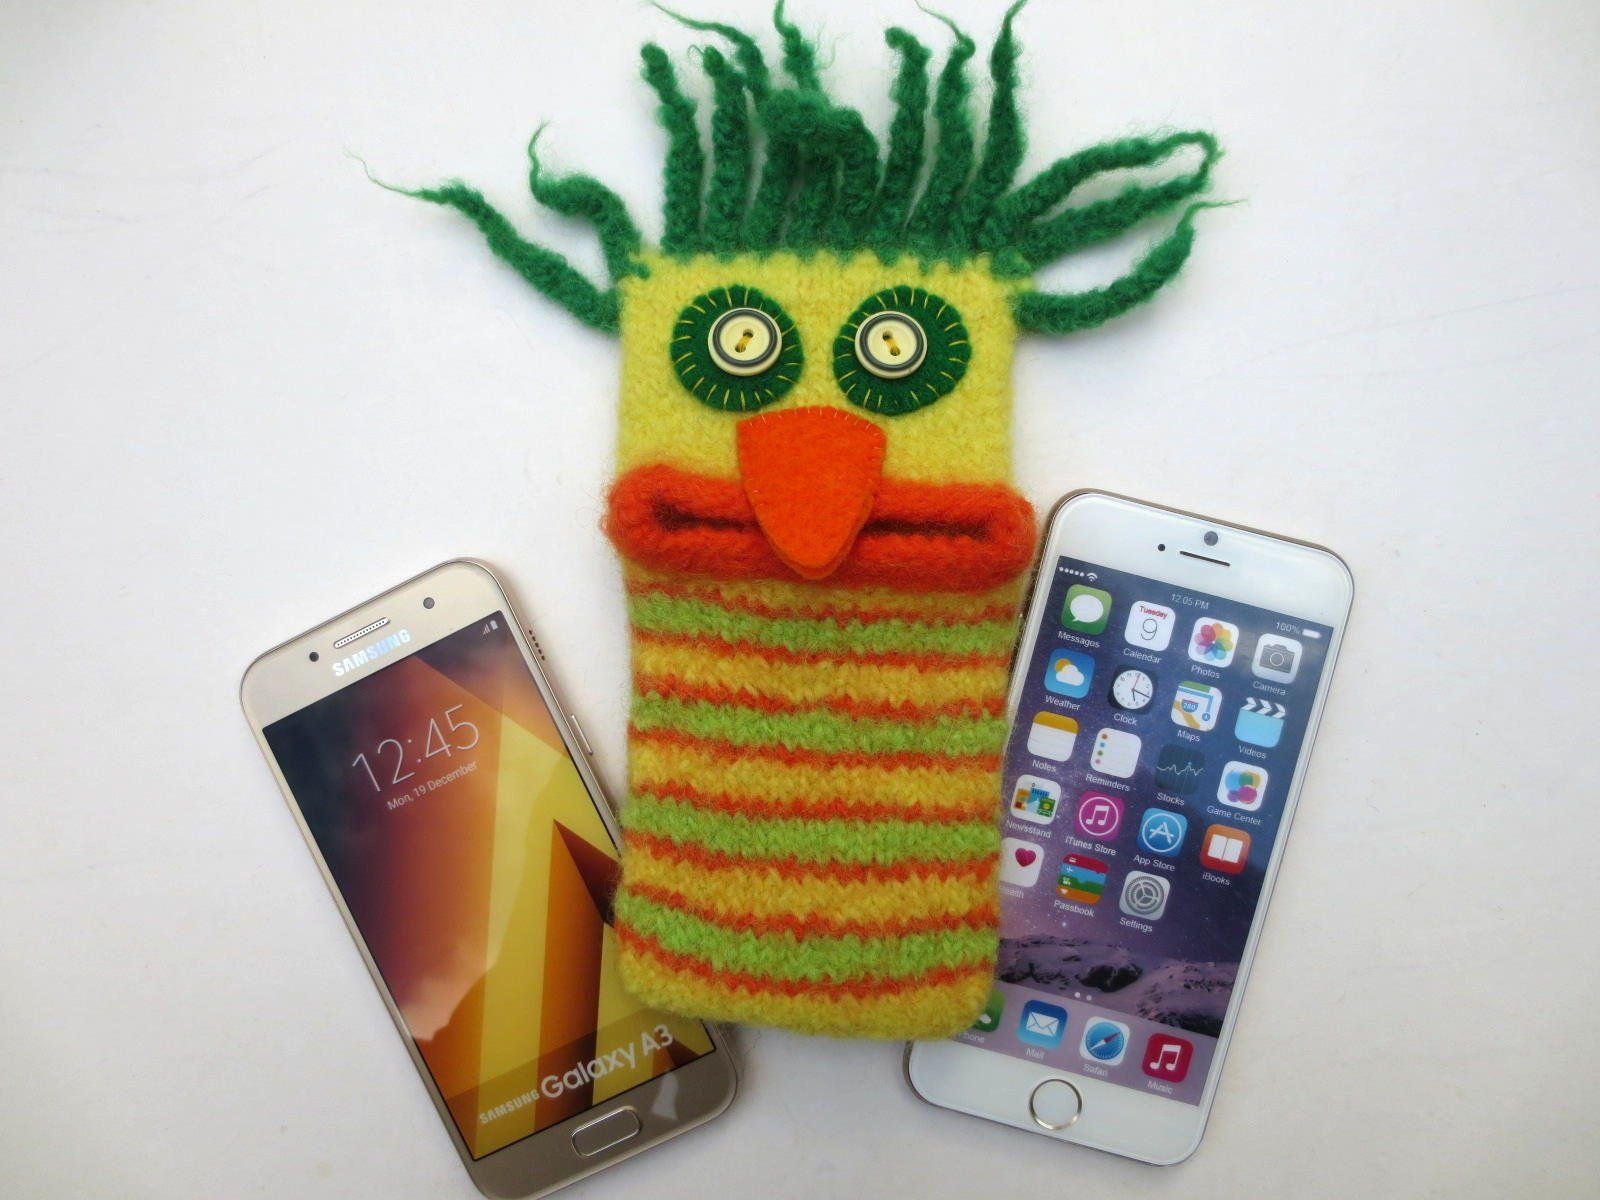 M Phone Bag Titus Mobile Phone Monster Felted Smartphone Case Samsung Galaxy A 3 Iphone 6 Iphone 8 Mit Bildern Handytasche Smartphone Hulle Iphone